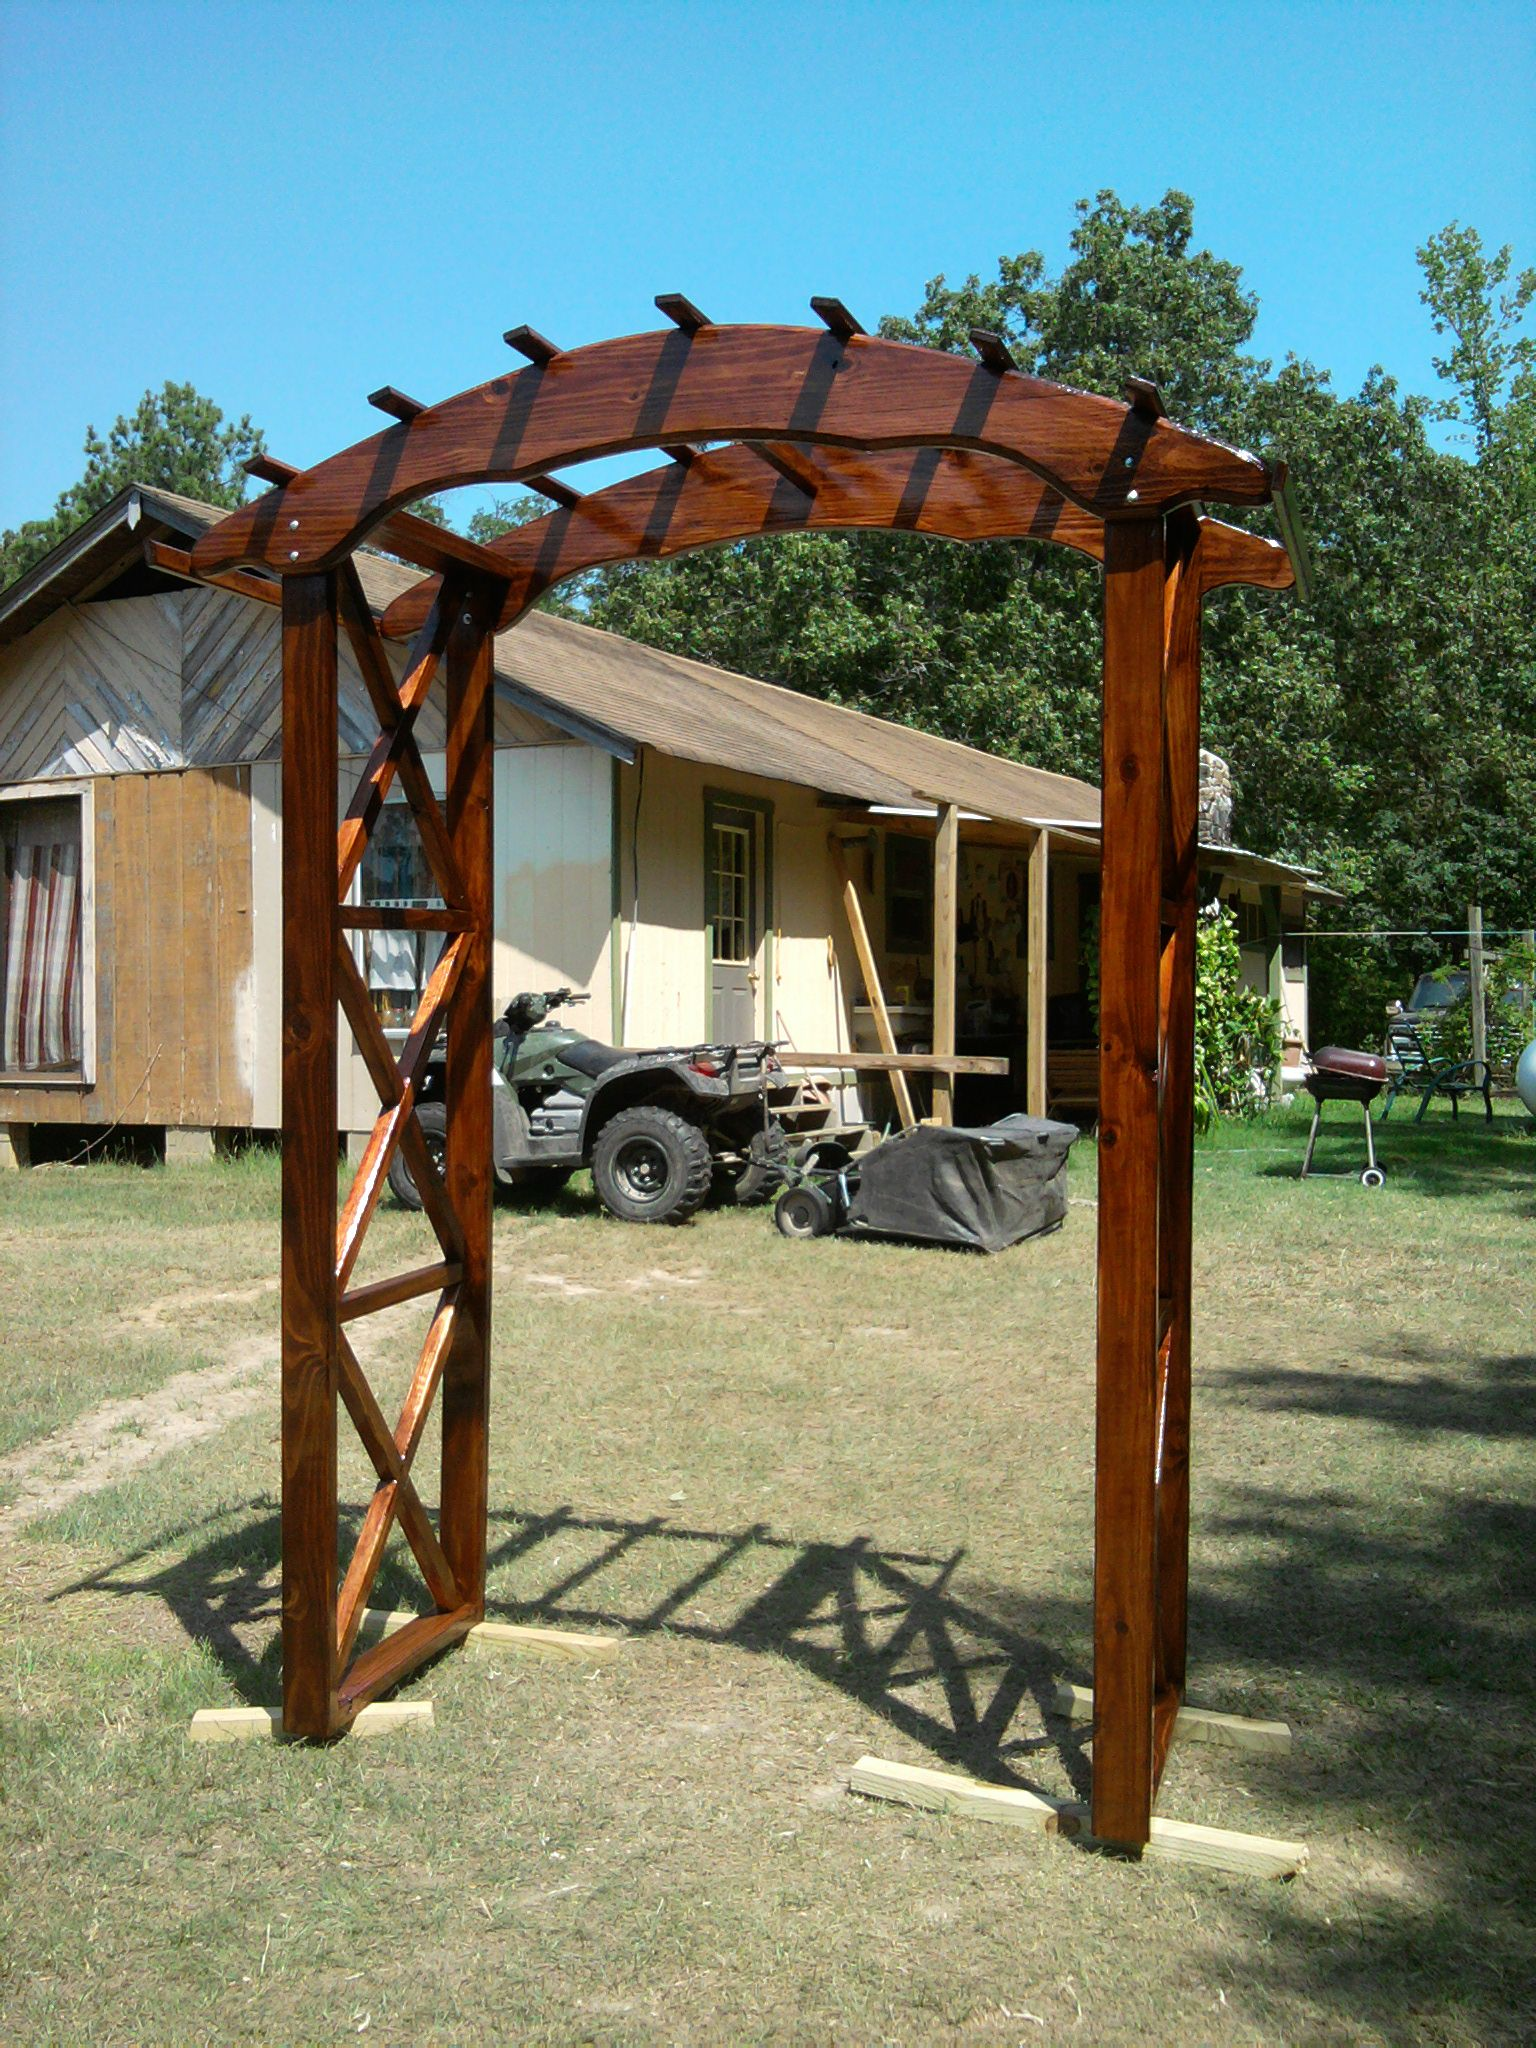 Rustic arbor plans rustic x wedding arch do it yourself home rustic arbor plans rustic x wedding arch do it yourself home projects from ana white solutioingenieria